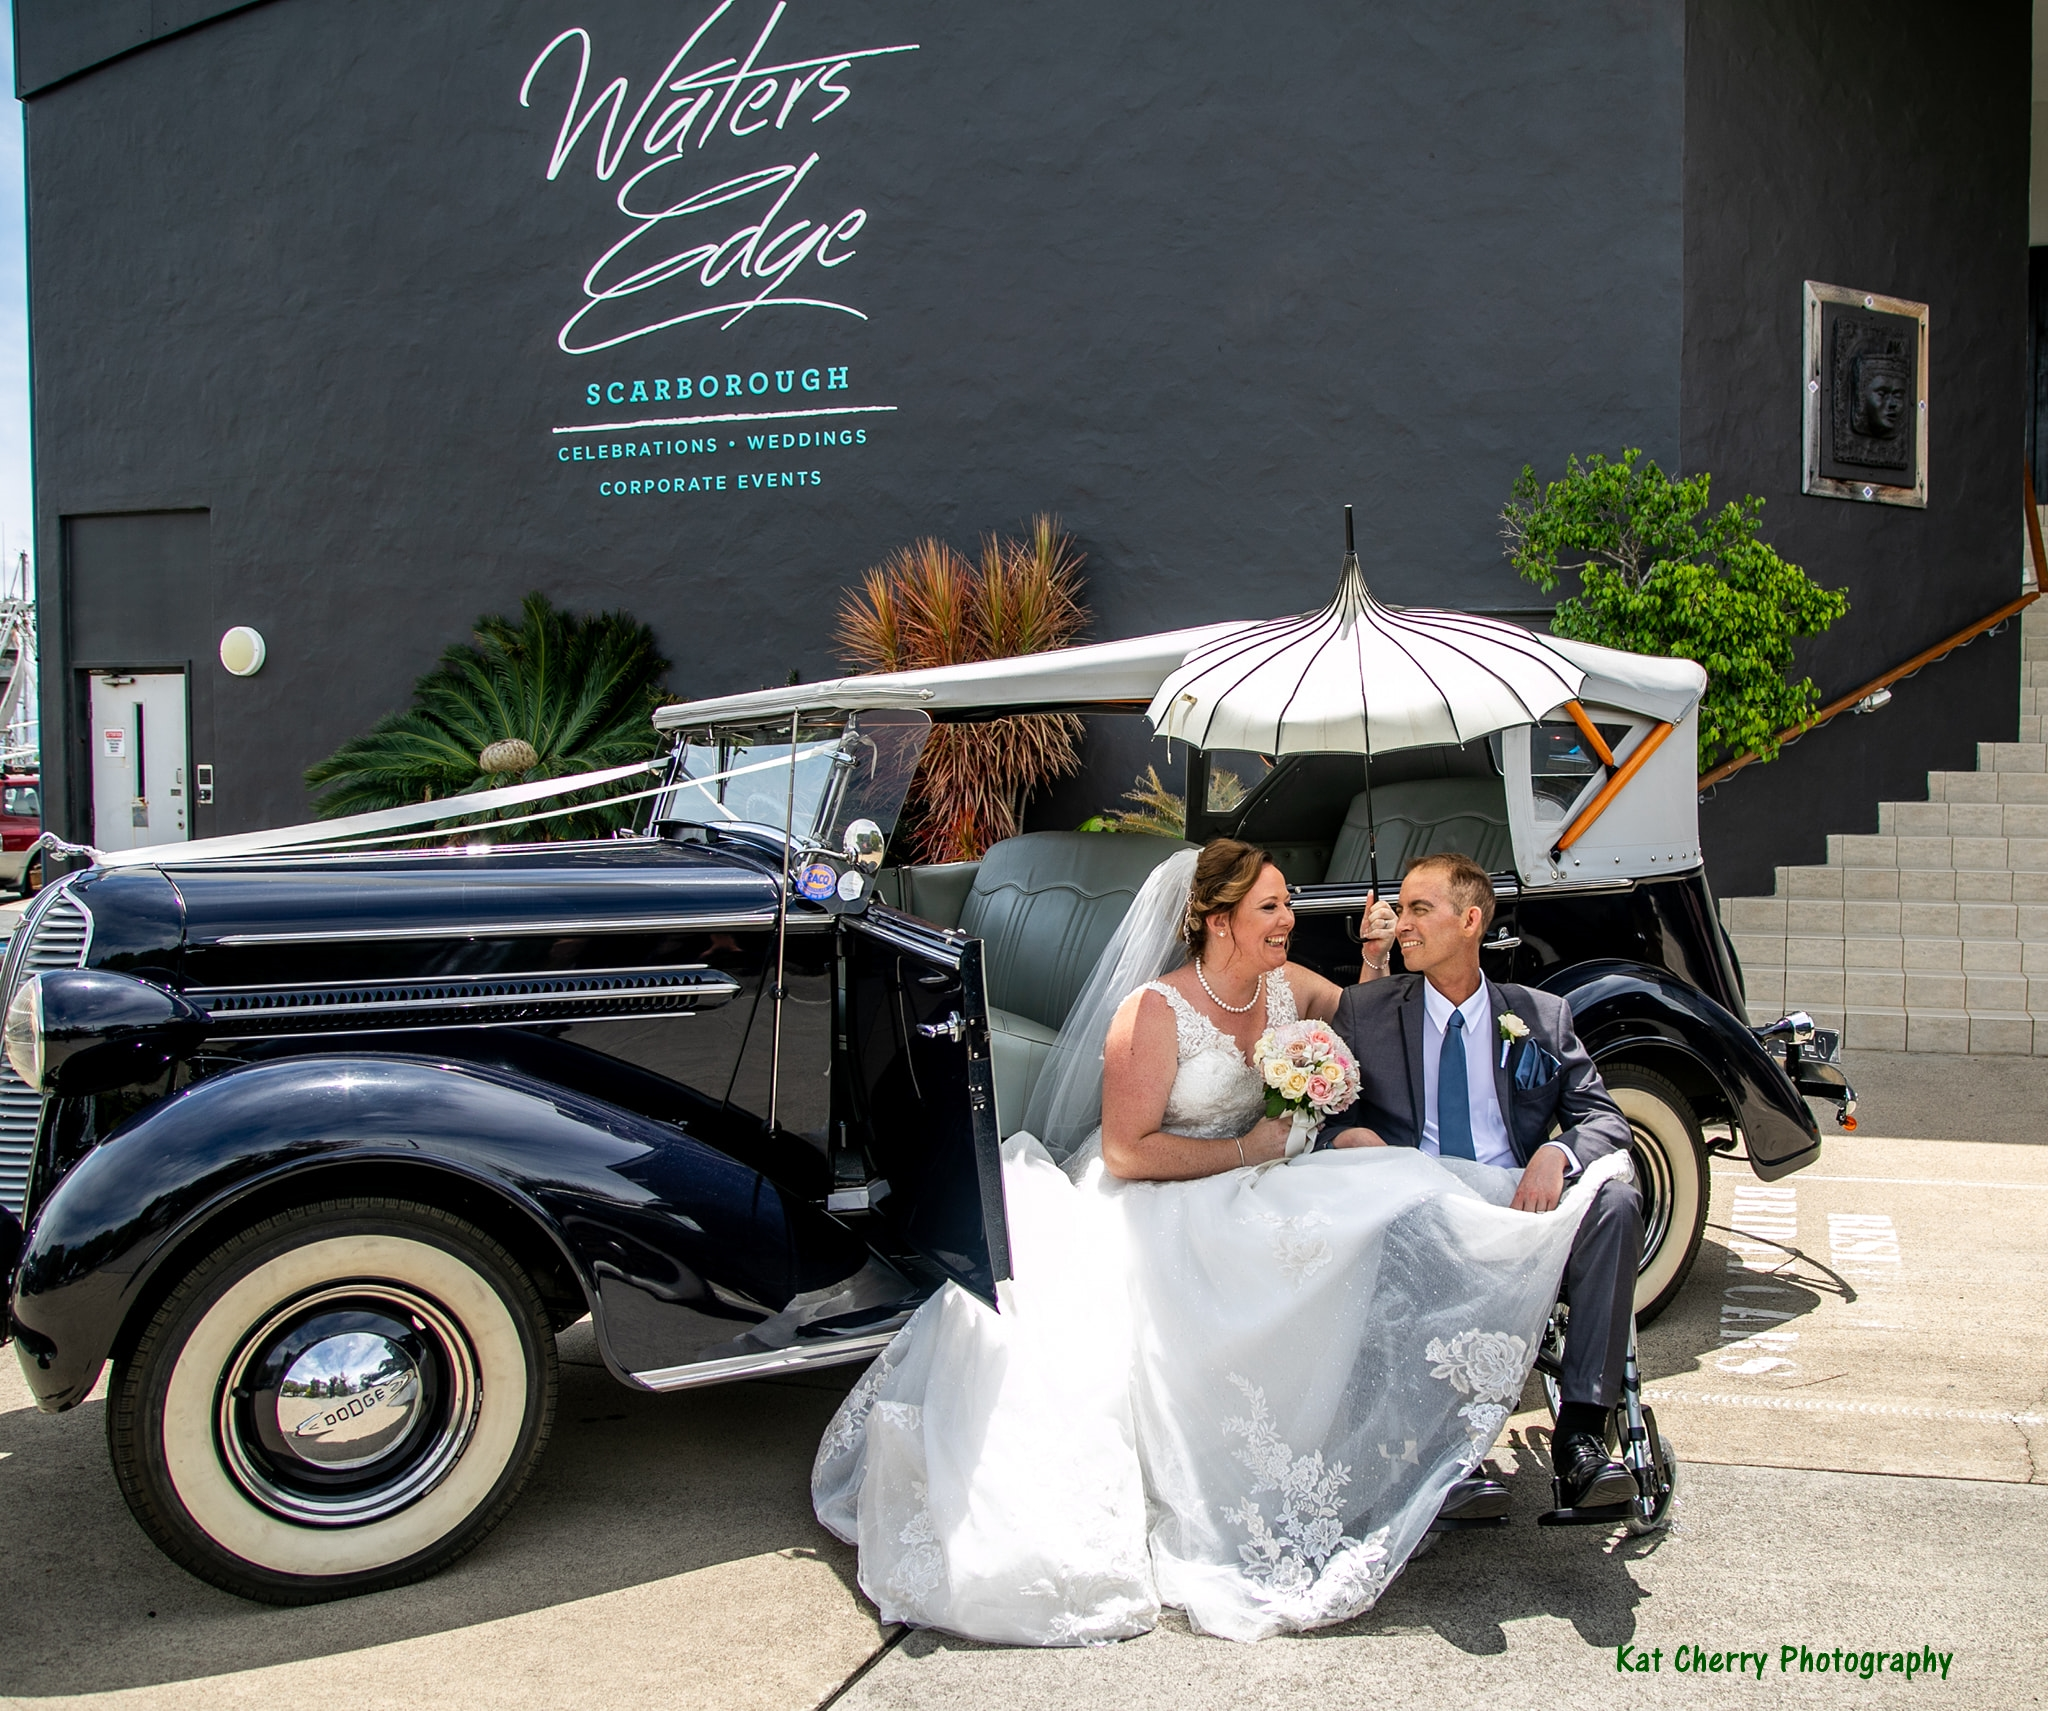 My Wedding Wish Roaring Twenties Vintage